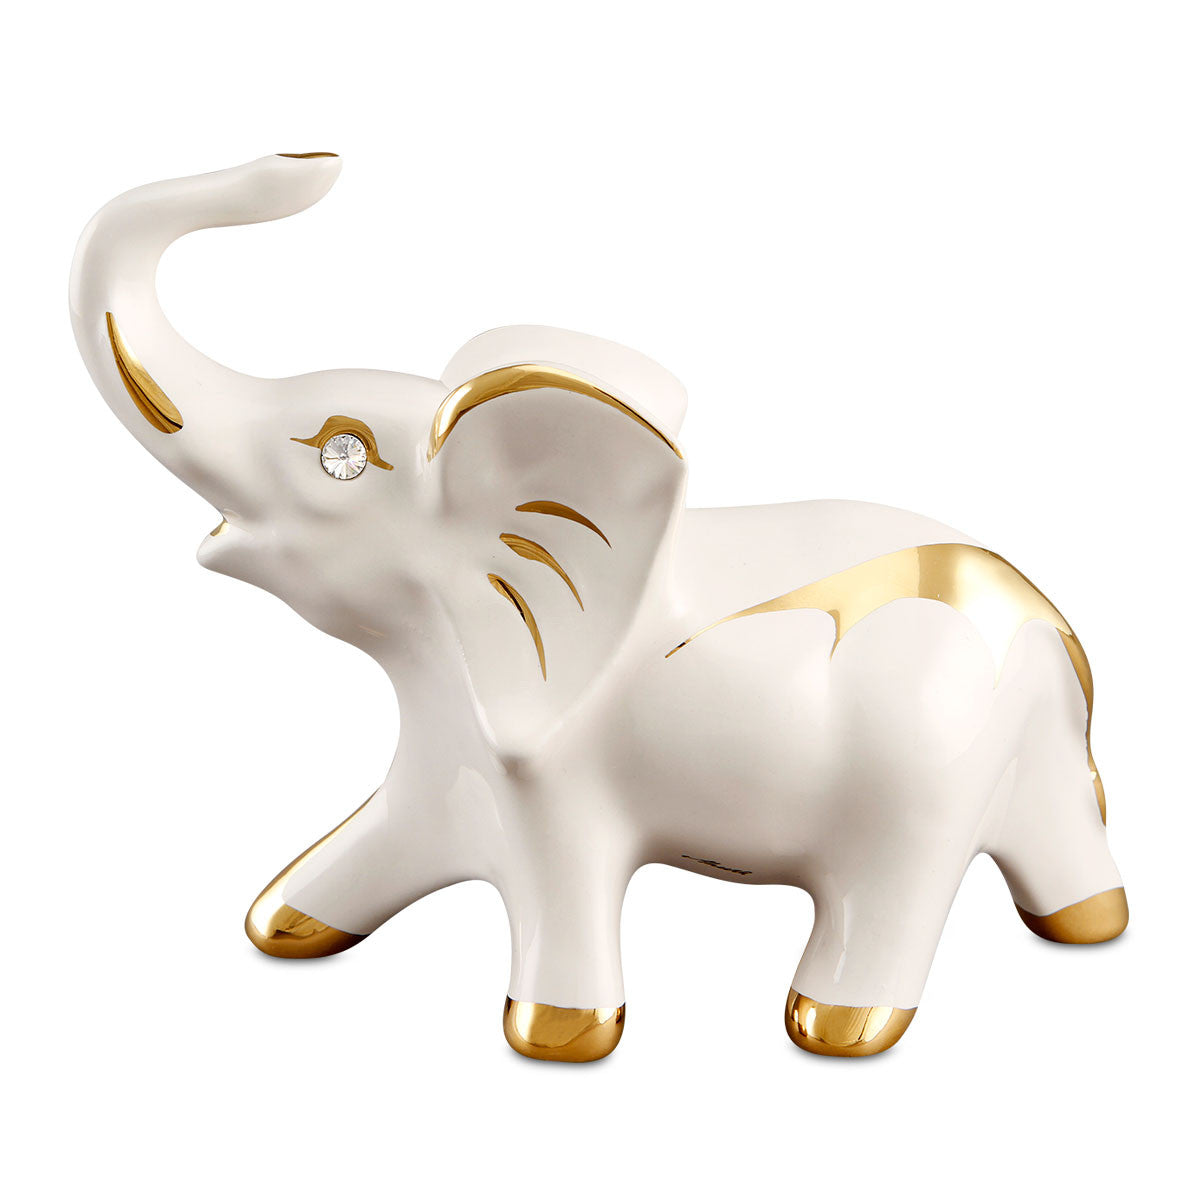 Ceramic good luck elephant with gold accents handmade in Italy